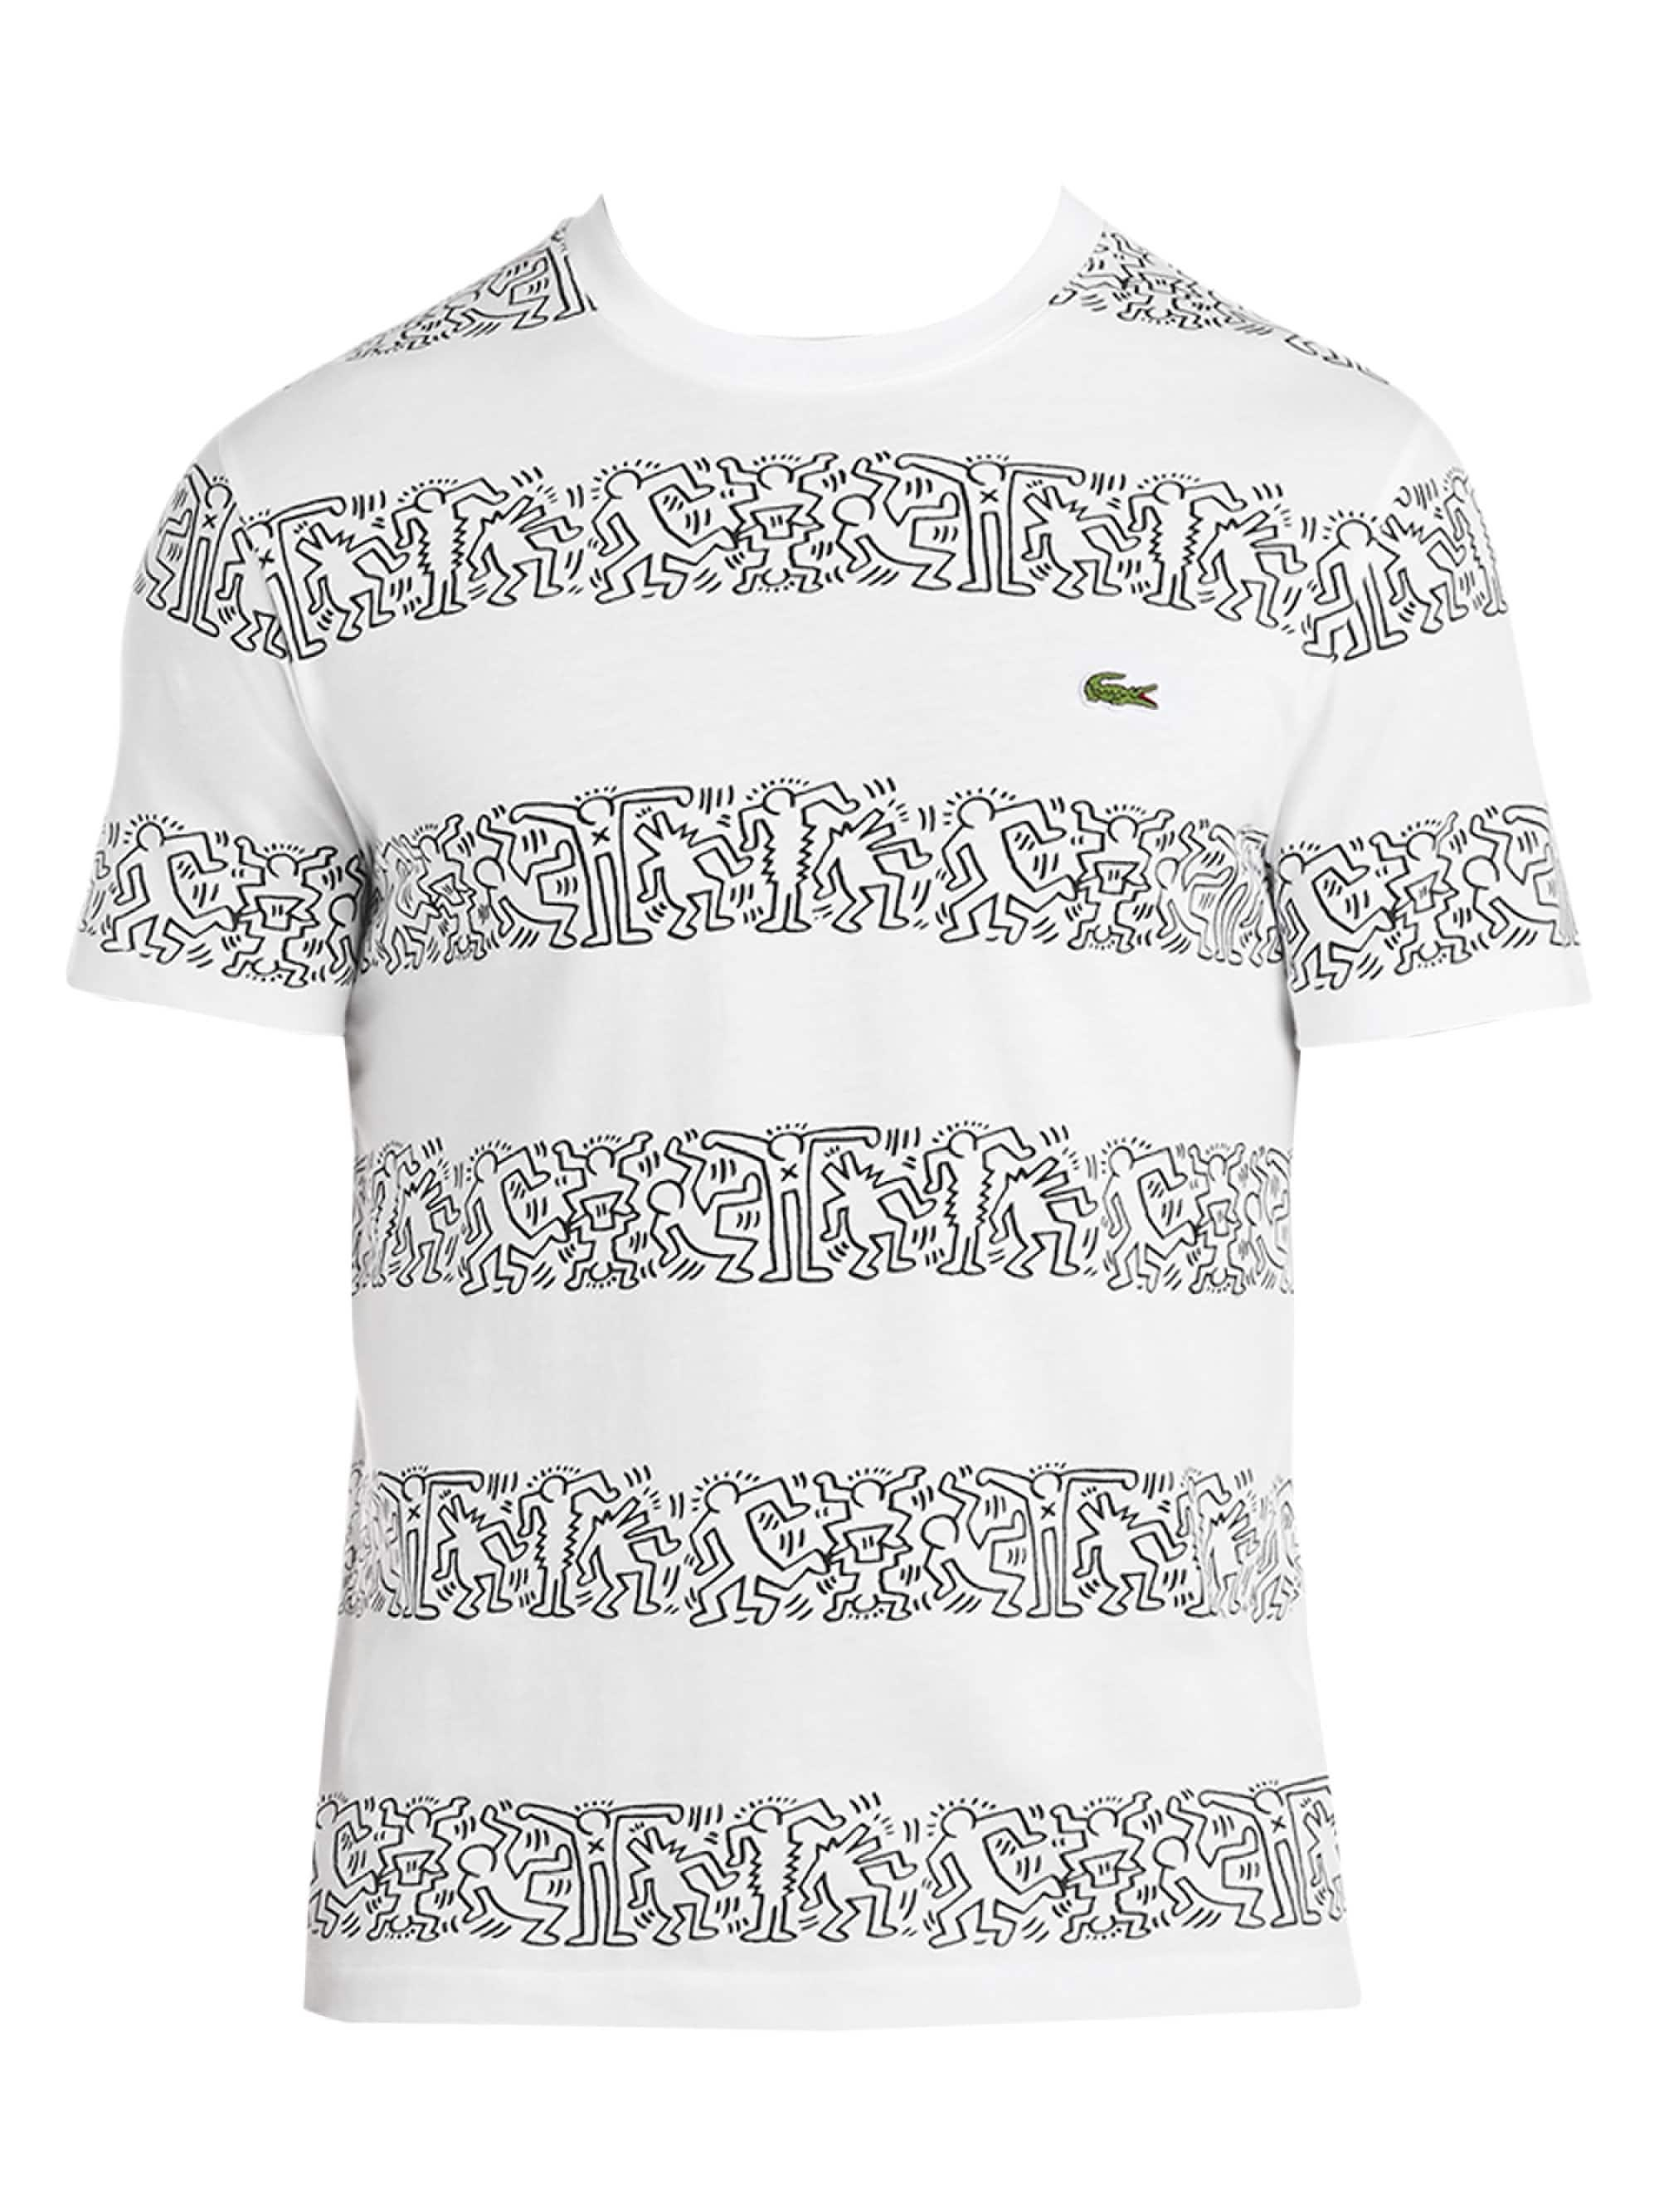 b50b1777 Lacoste White S/s Printed Stripes Jersey T-shirt for men